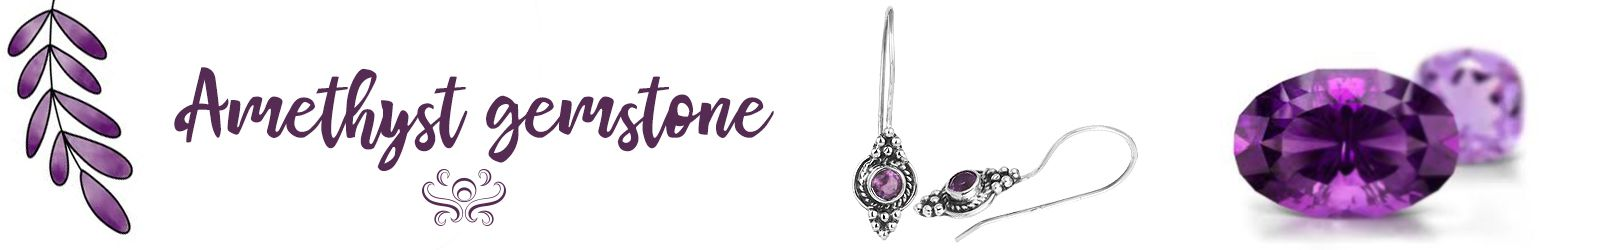 Wholesale Amethyst Gems Stone Jewelry Manufacturer, Supplier in Jaipur